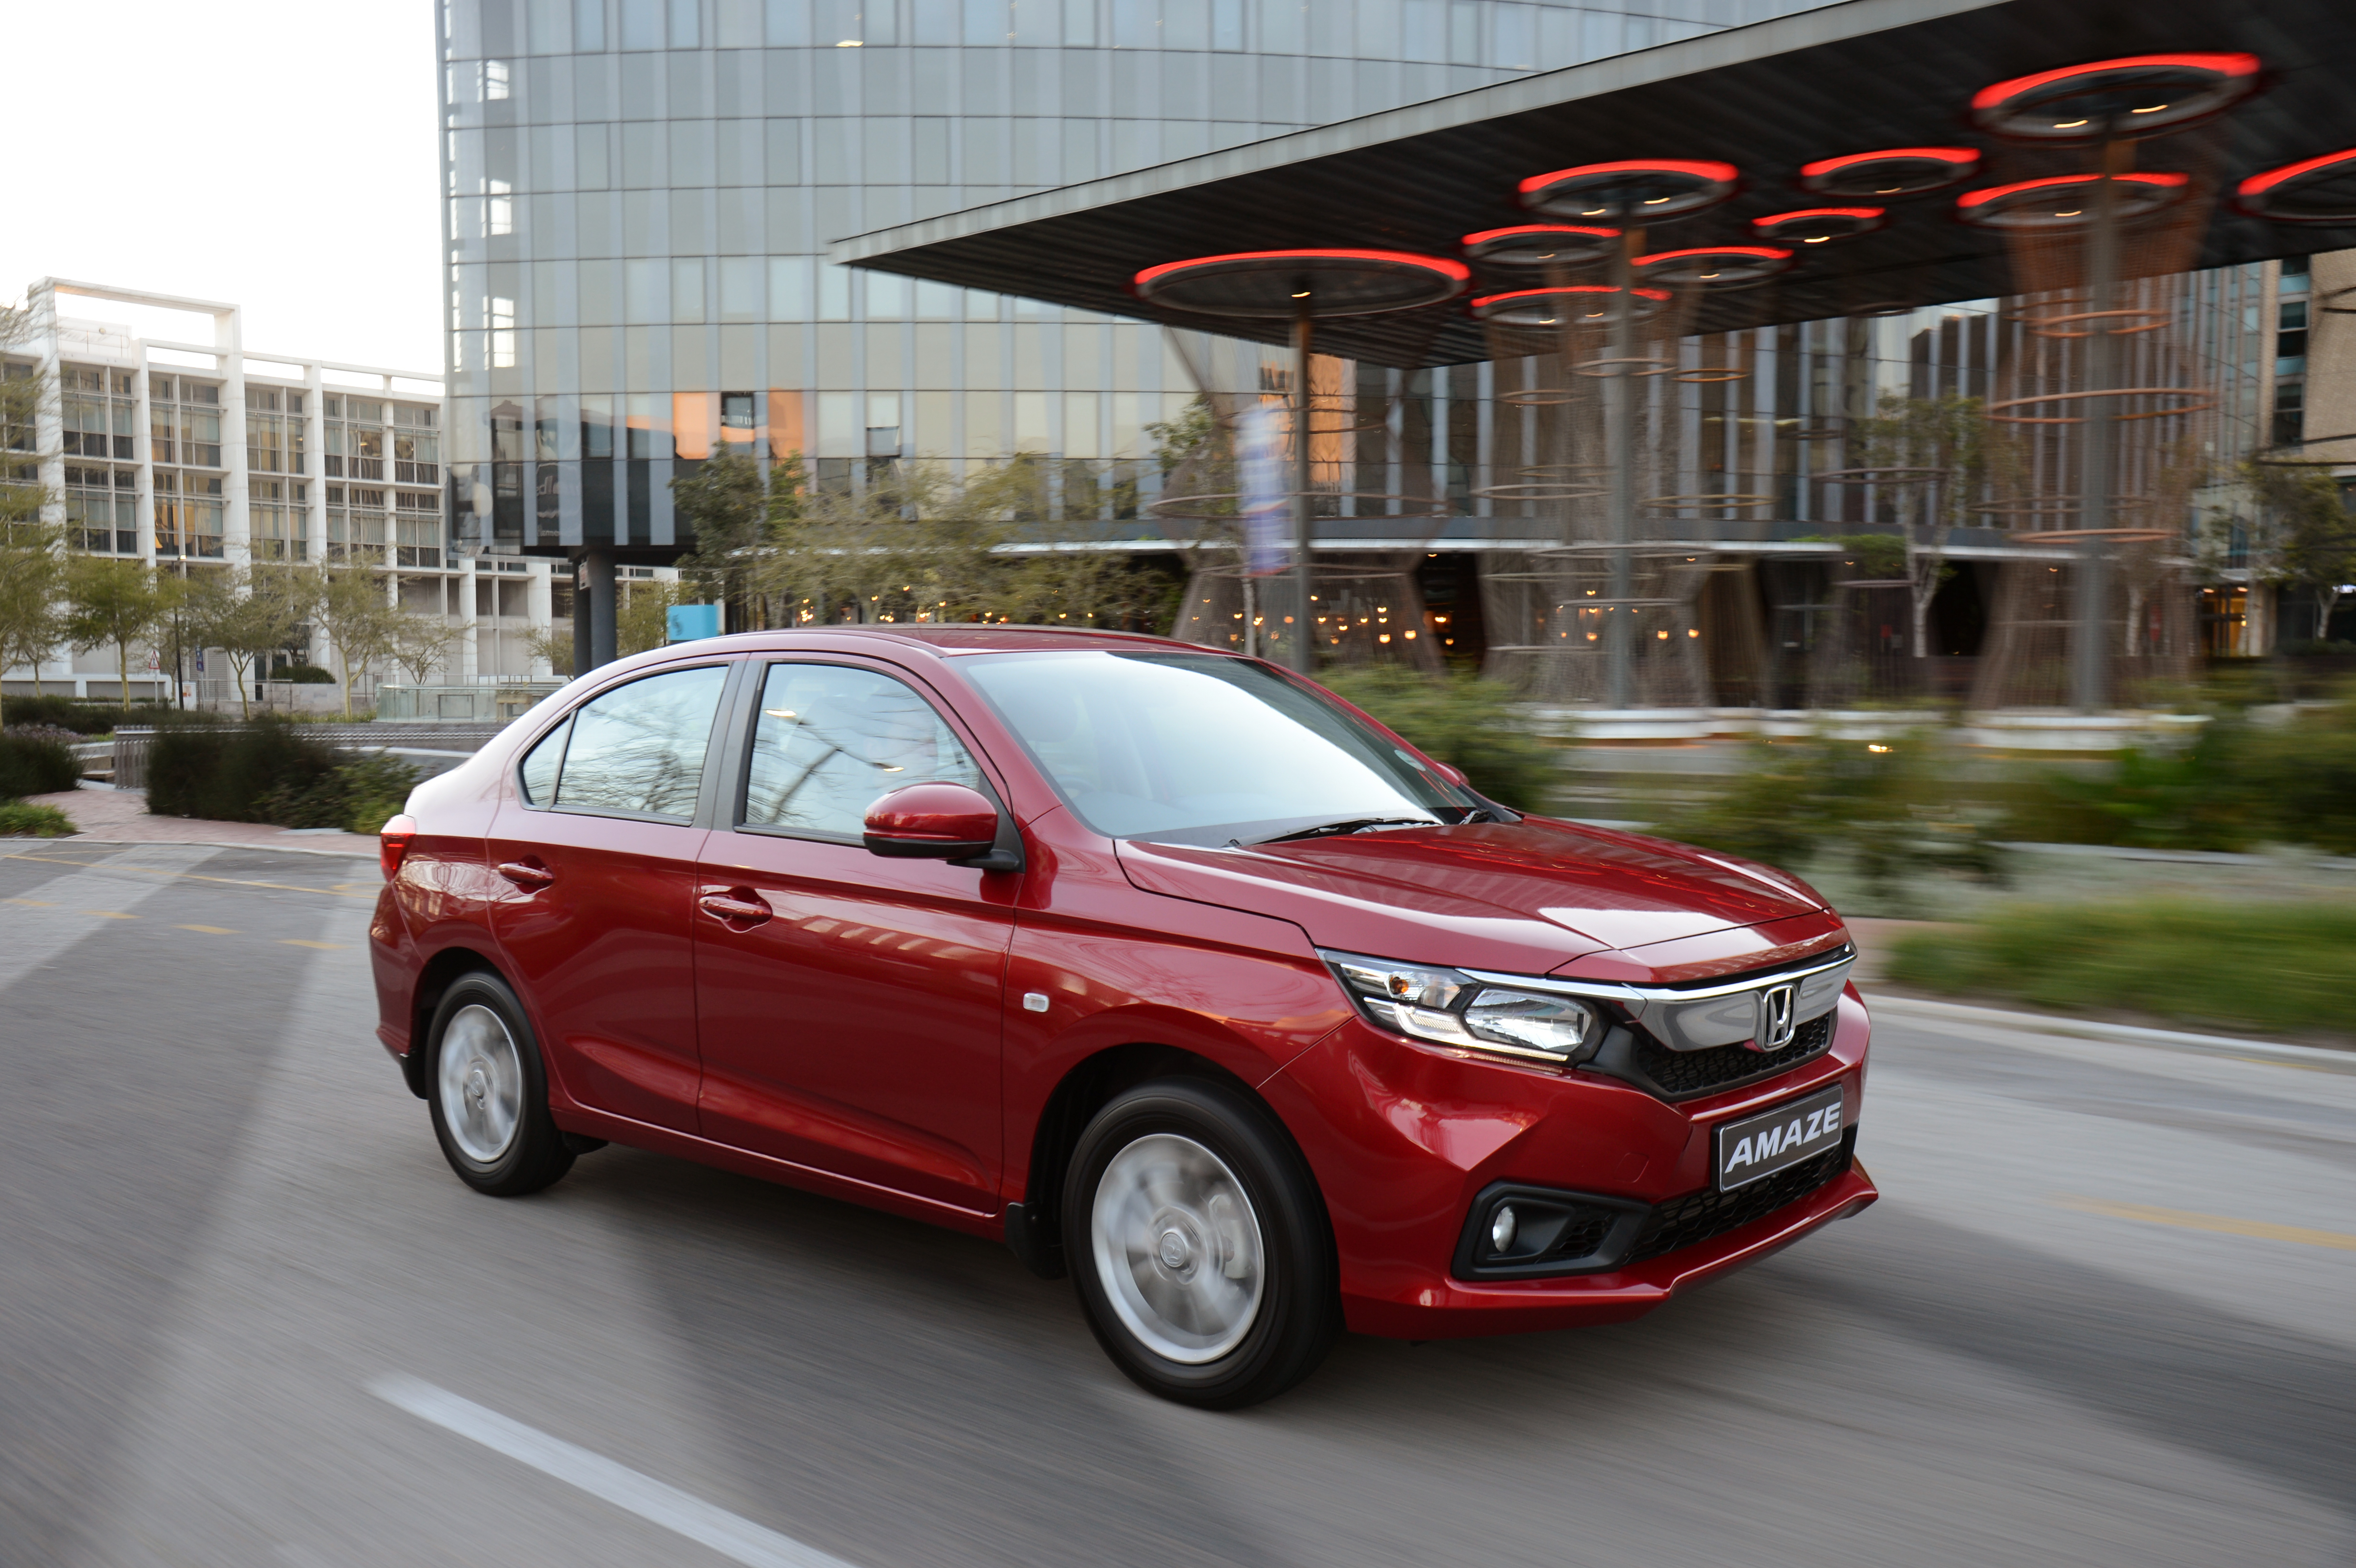 Honda Amaze: Making a case for small sedans